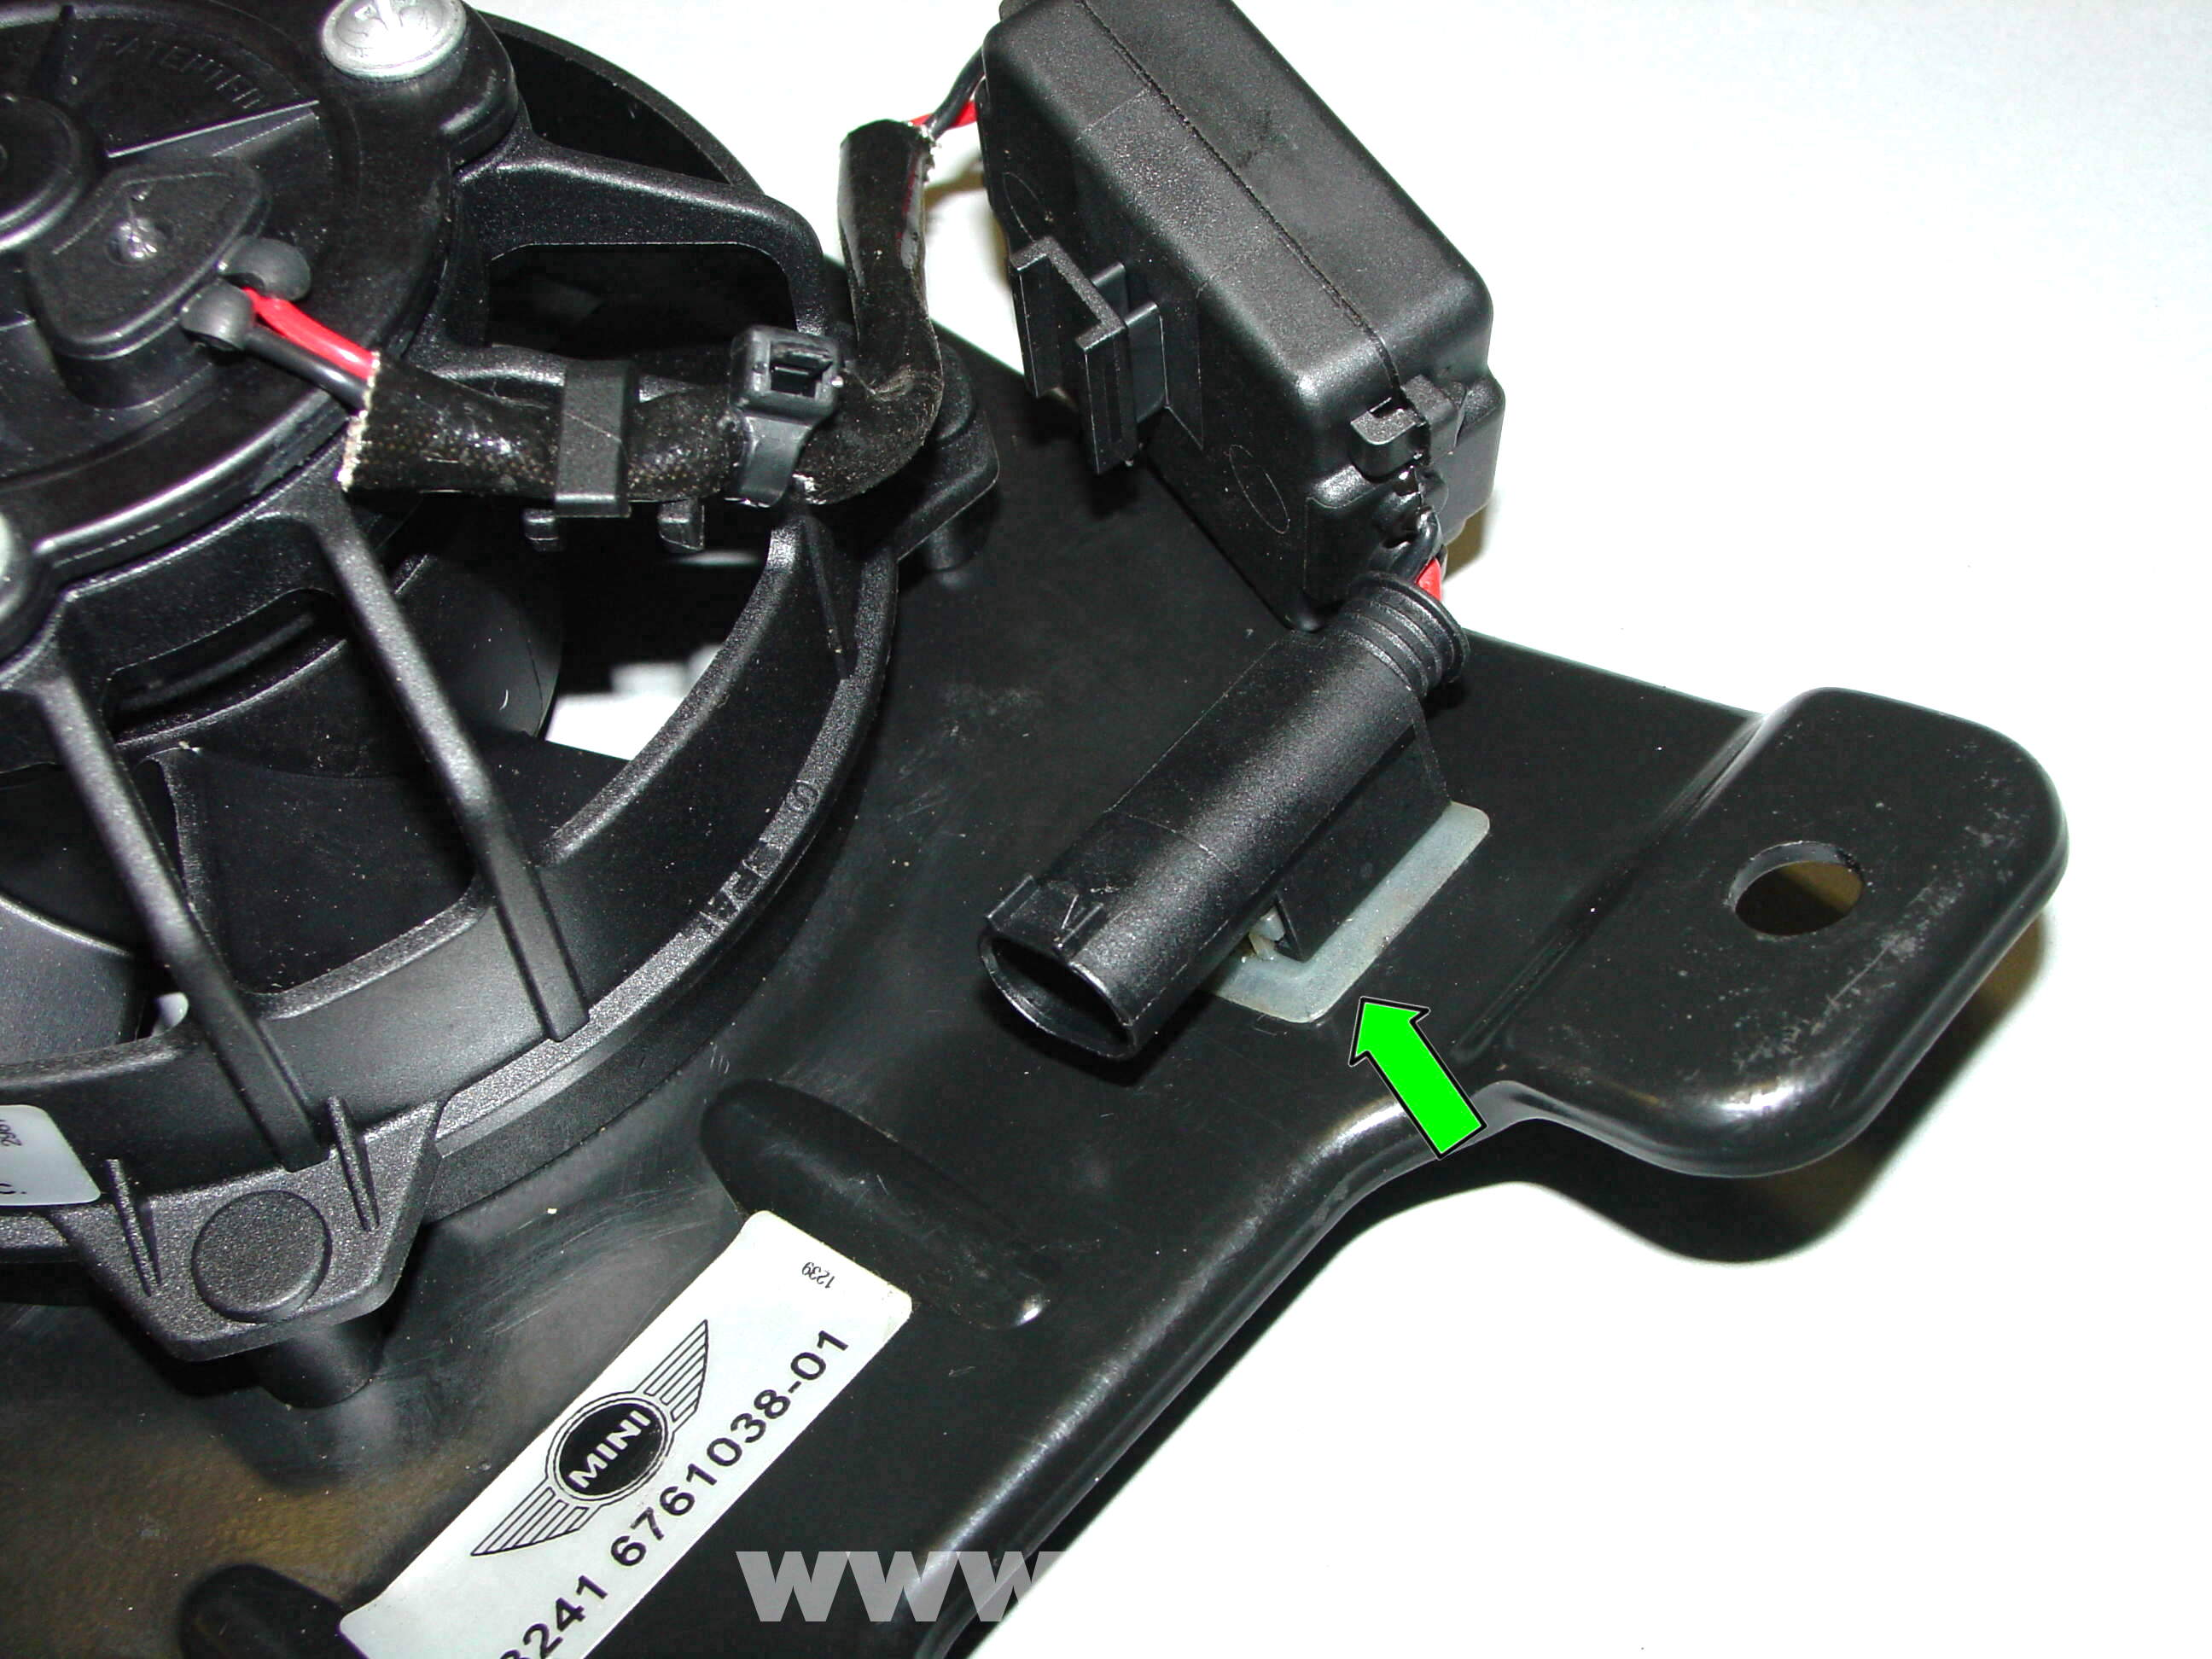 pic07 pelican technical article power steering fan replacement r50 r50 mini cooper wiring diagram at eliteediting.co